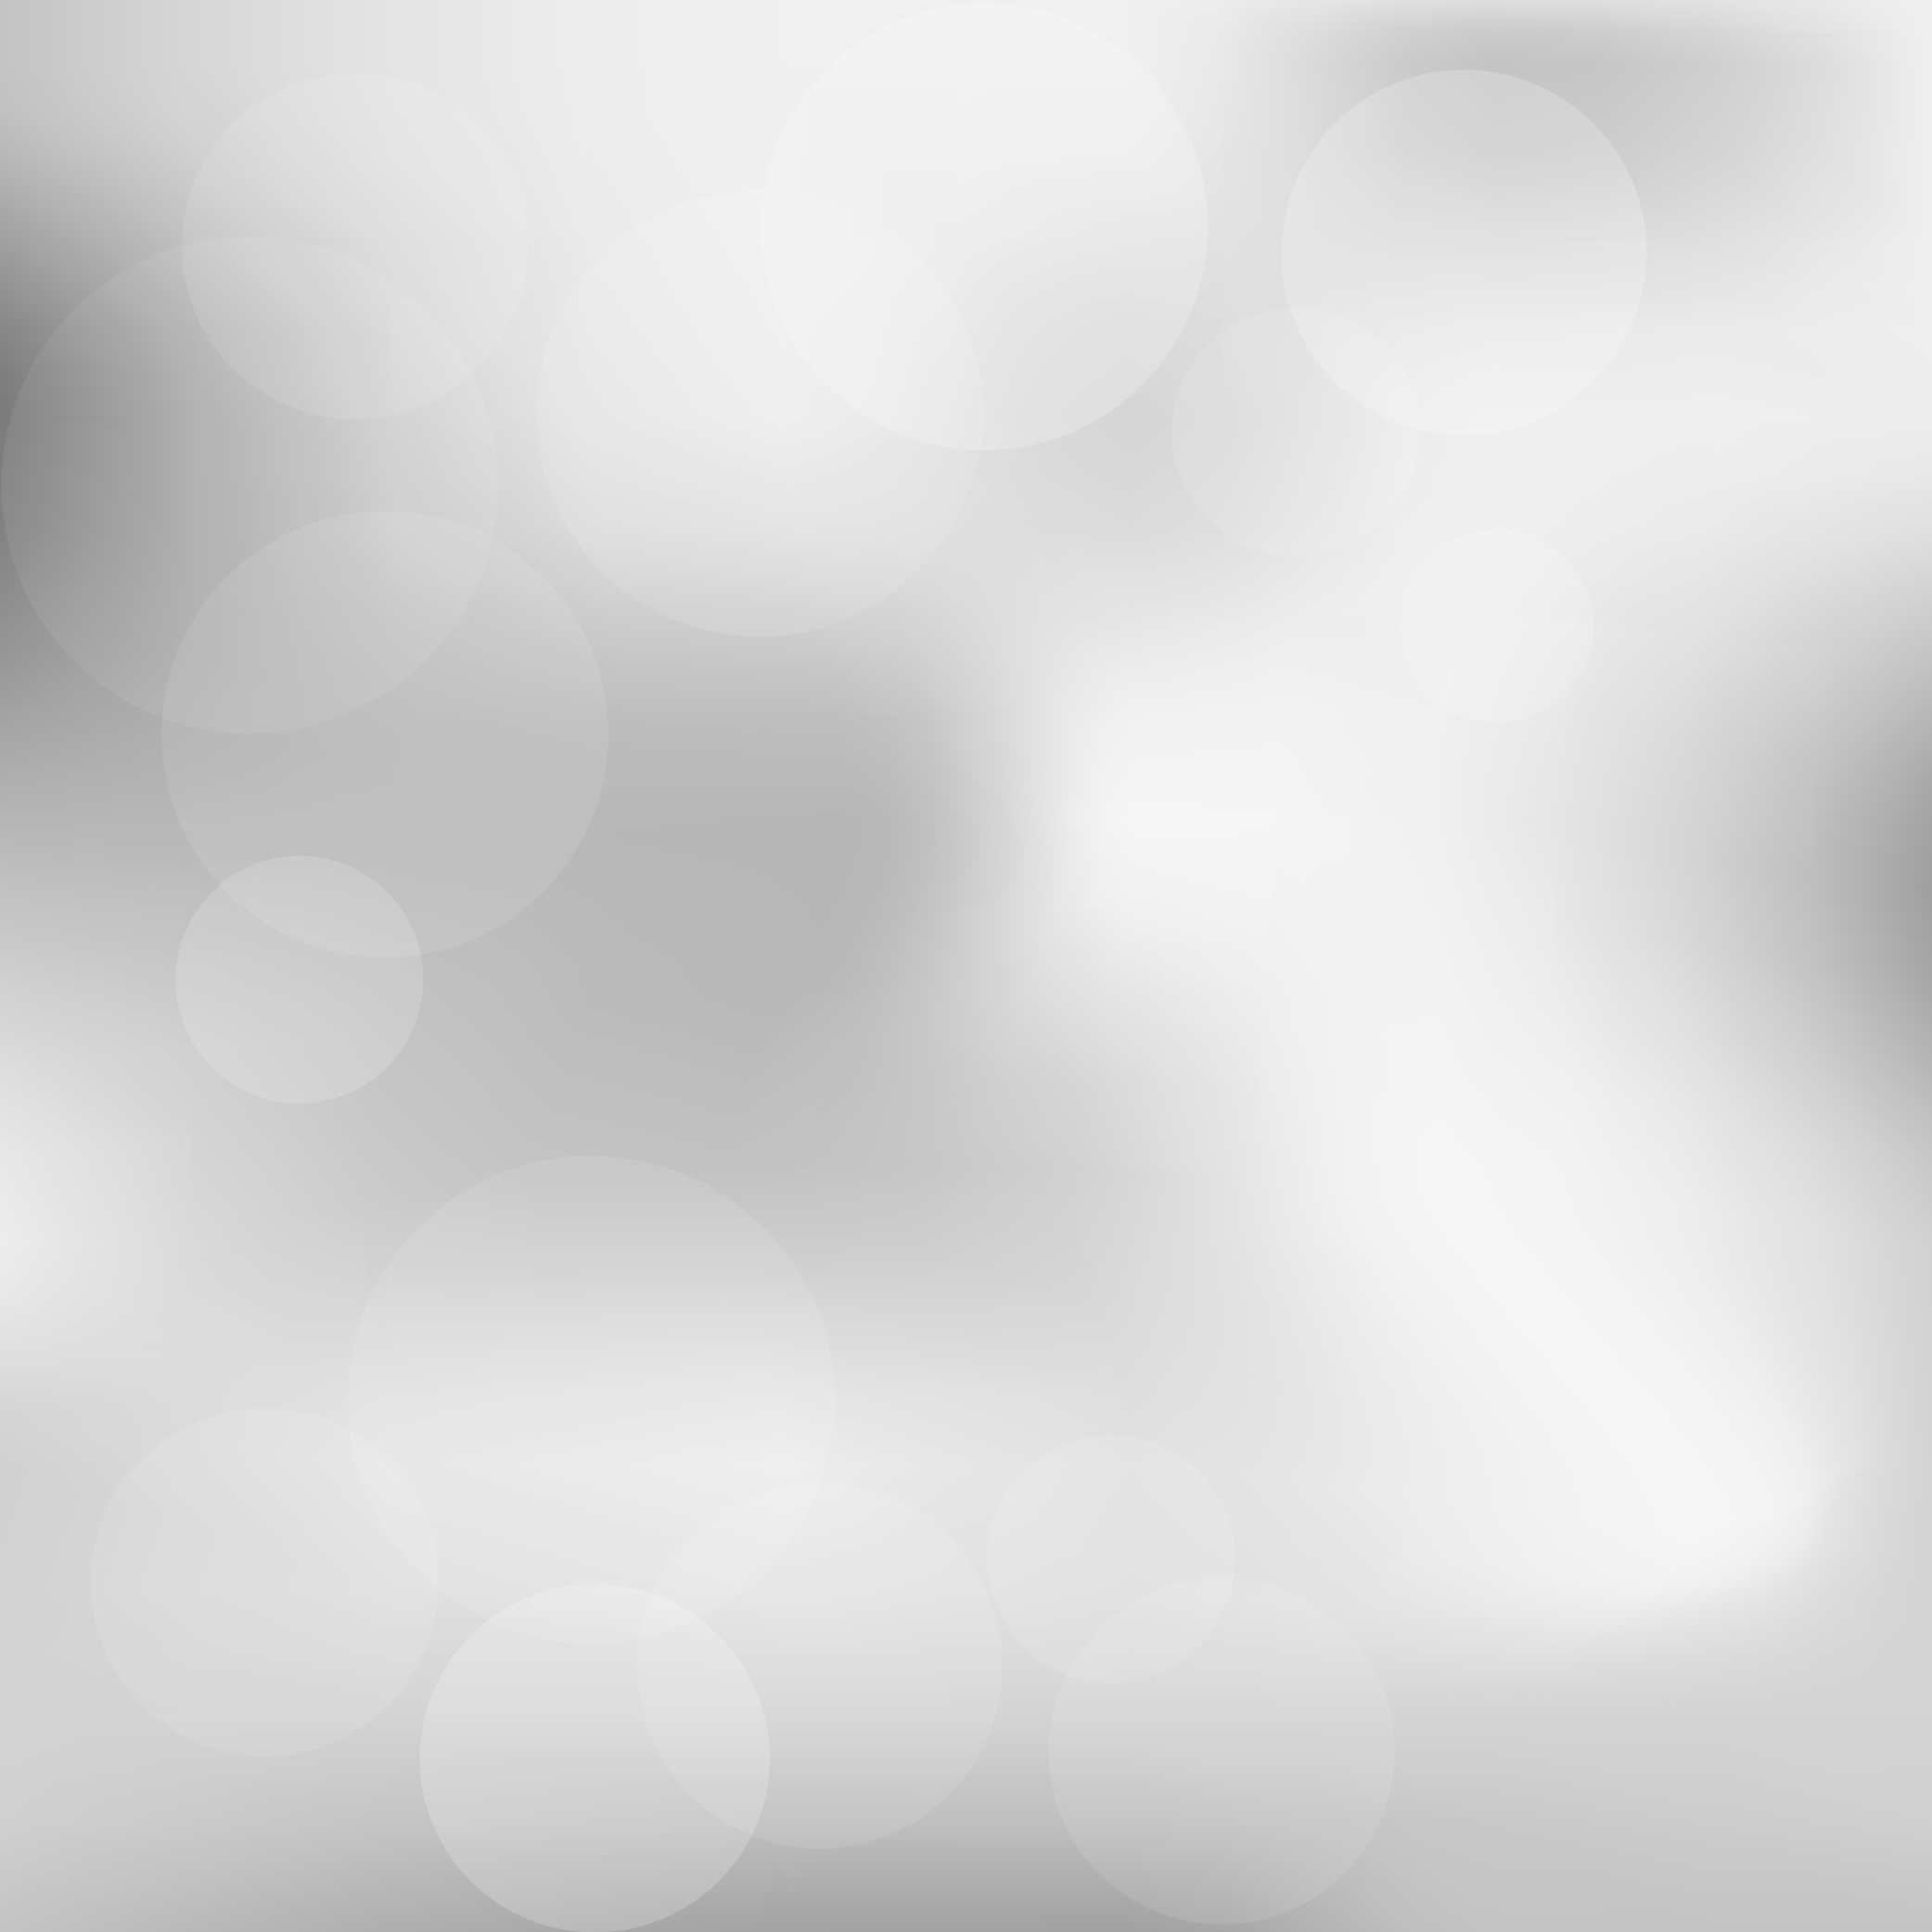 Blurred silver effect holographic gradient background example image 7